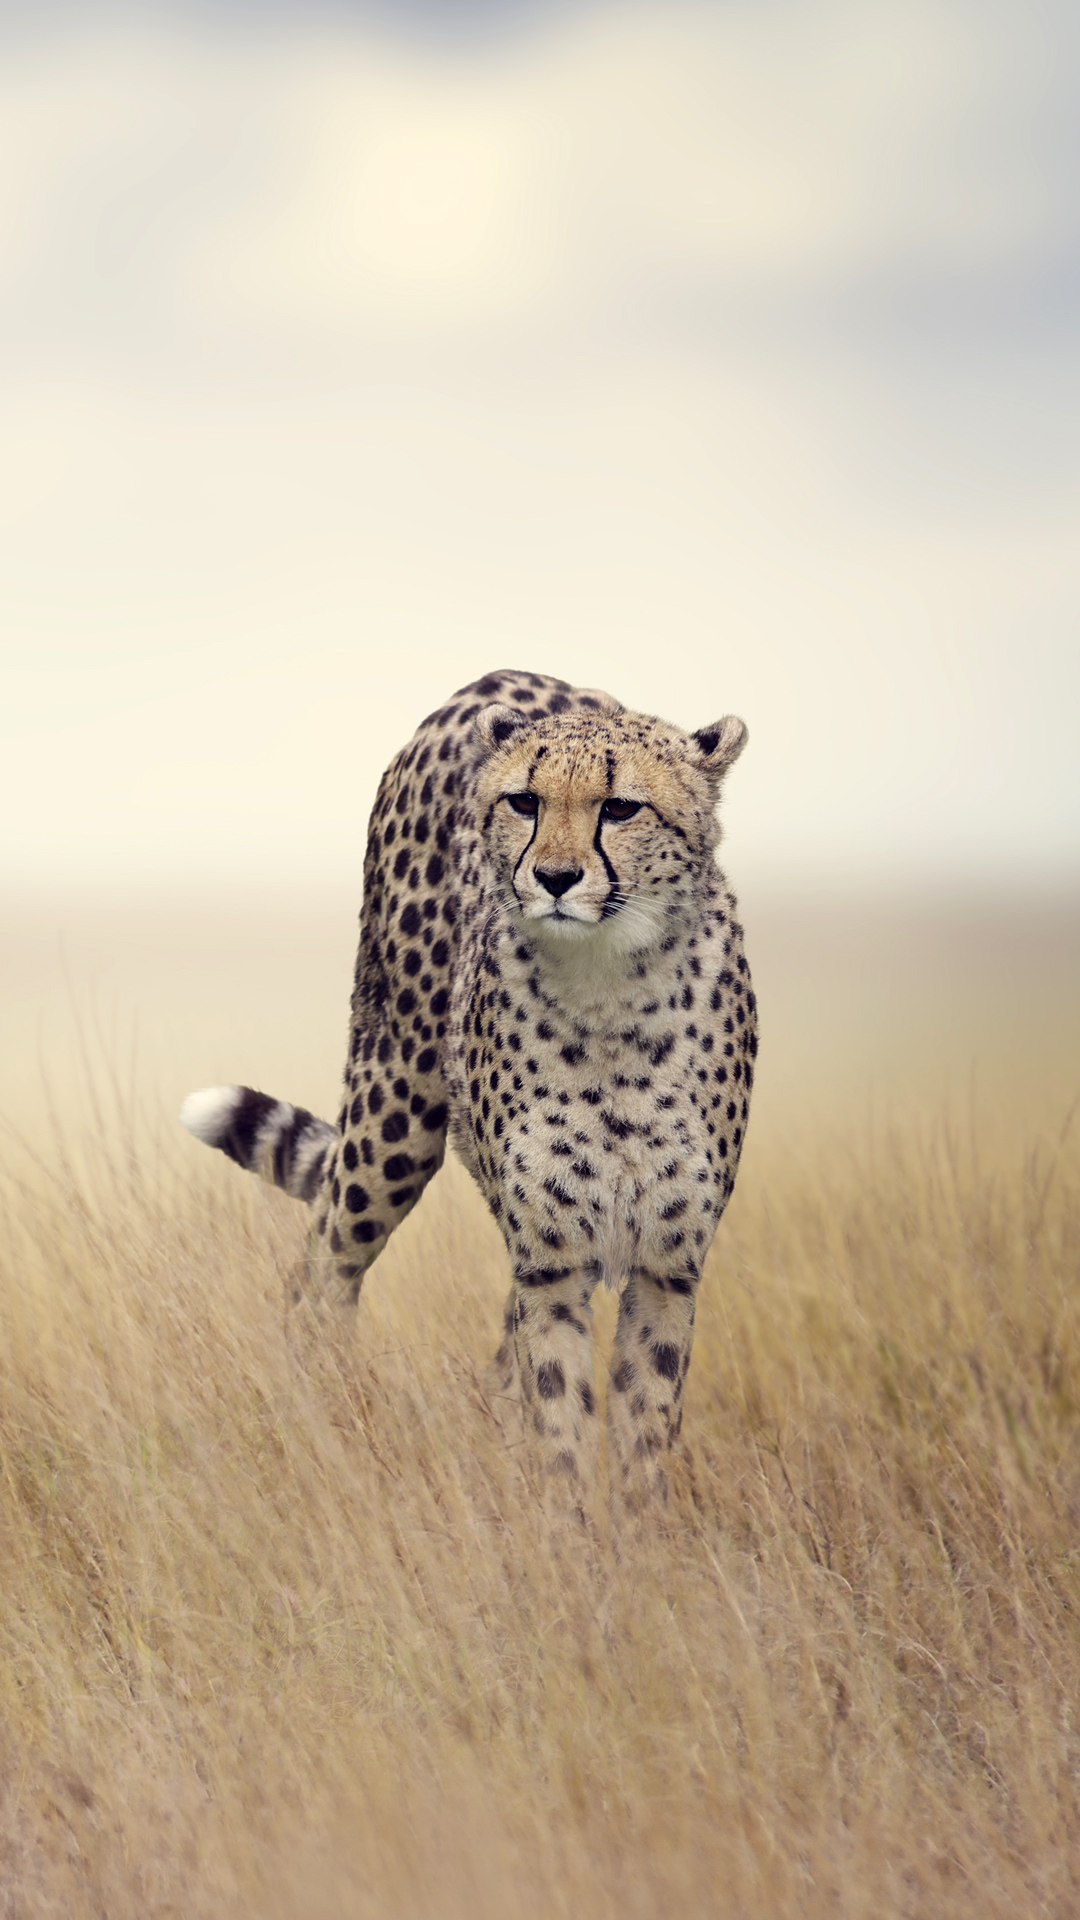 Cheetah Iphone Wallpaper